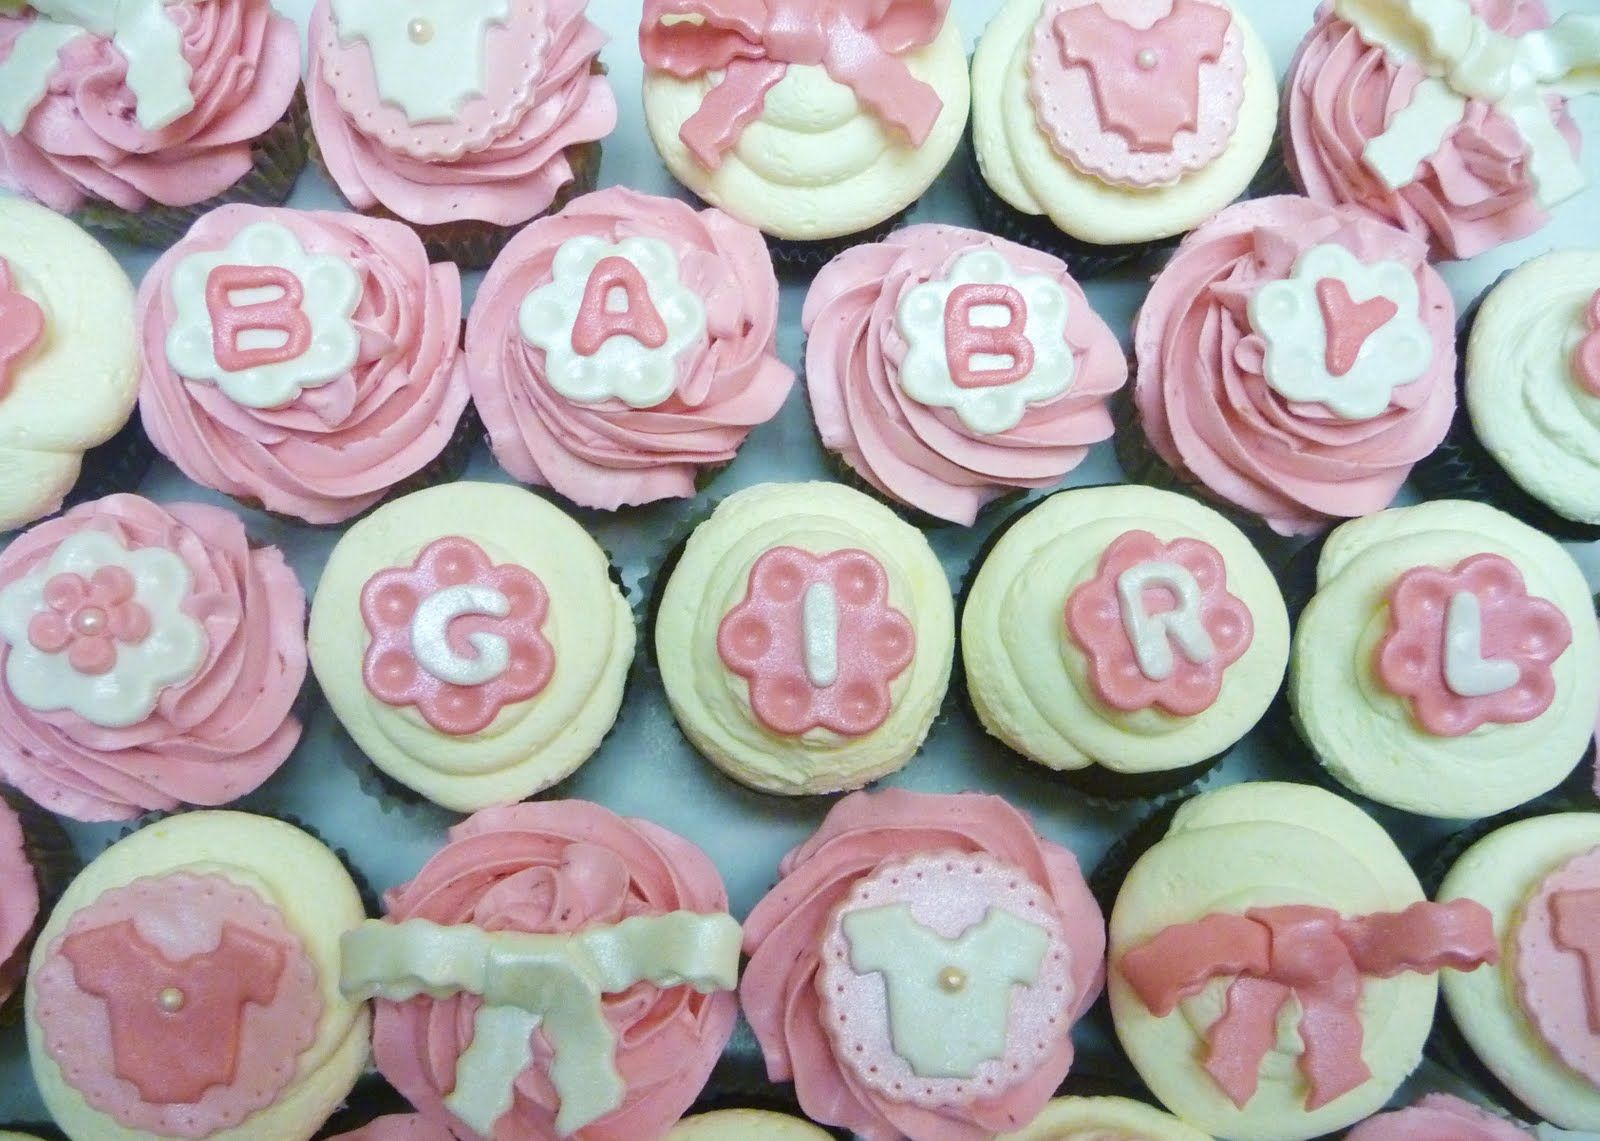 Cupcakes For Baby Shower For A Girl ~ Baby shower cupcakes for girls pure delights baking co baby